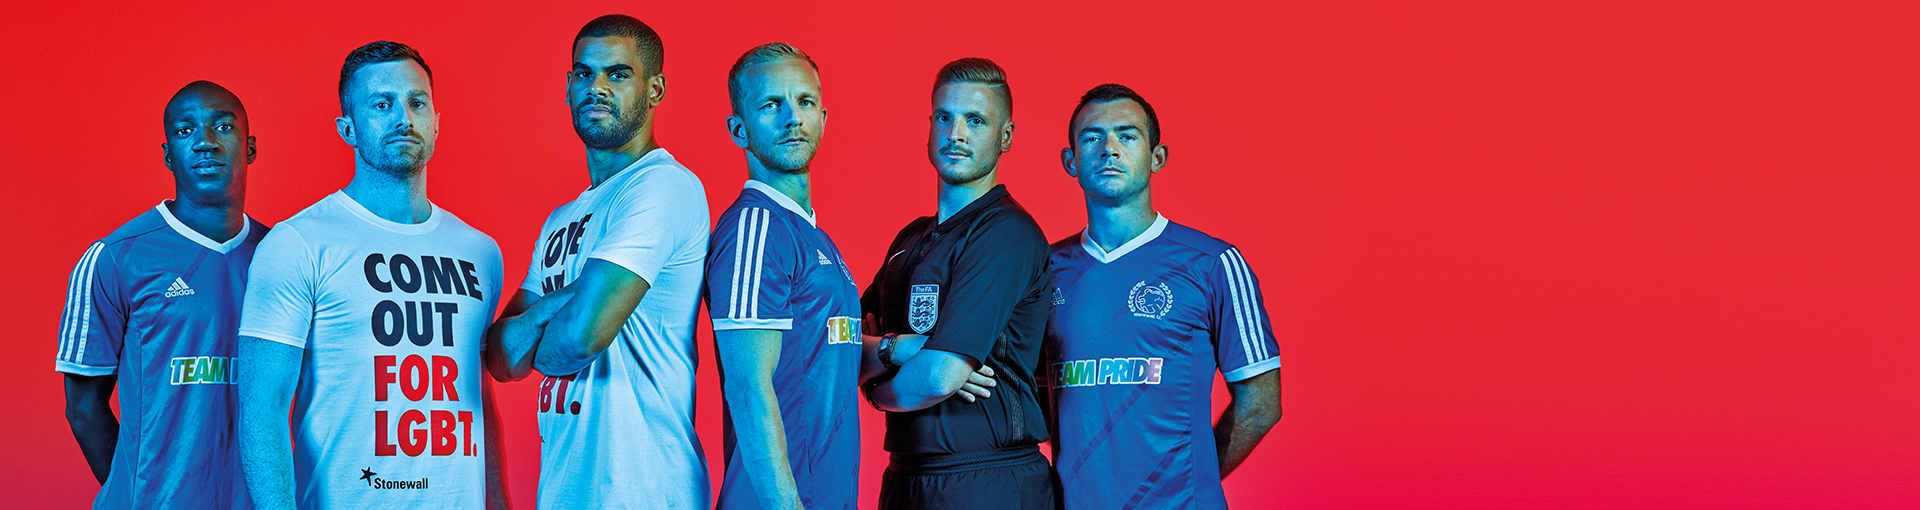 Come Out For LGBT - Stonewall FC footballers, Ryan Atkin, Ian Kehoe